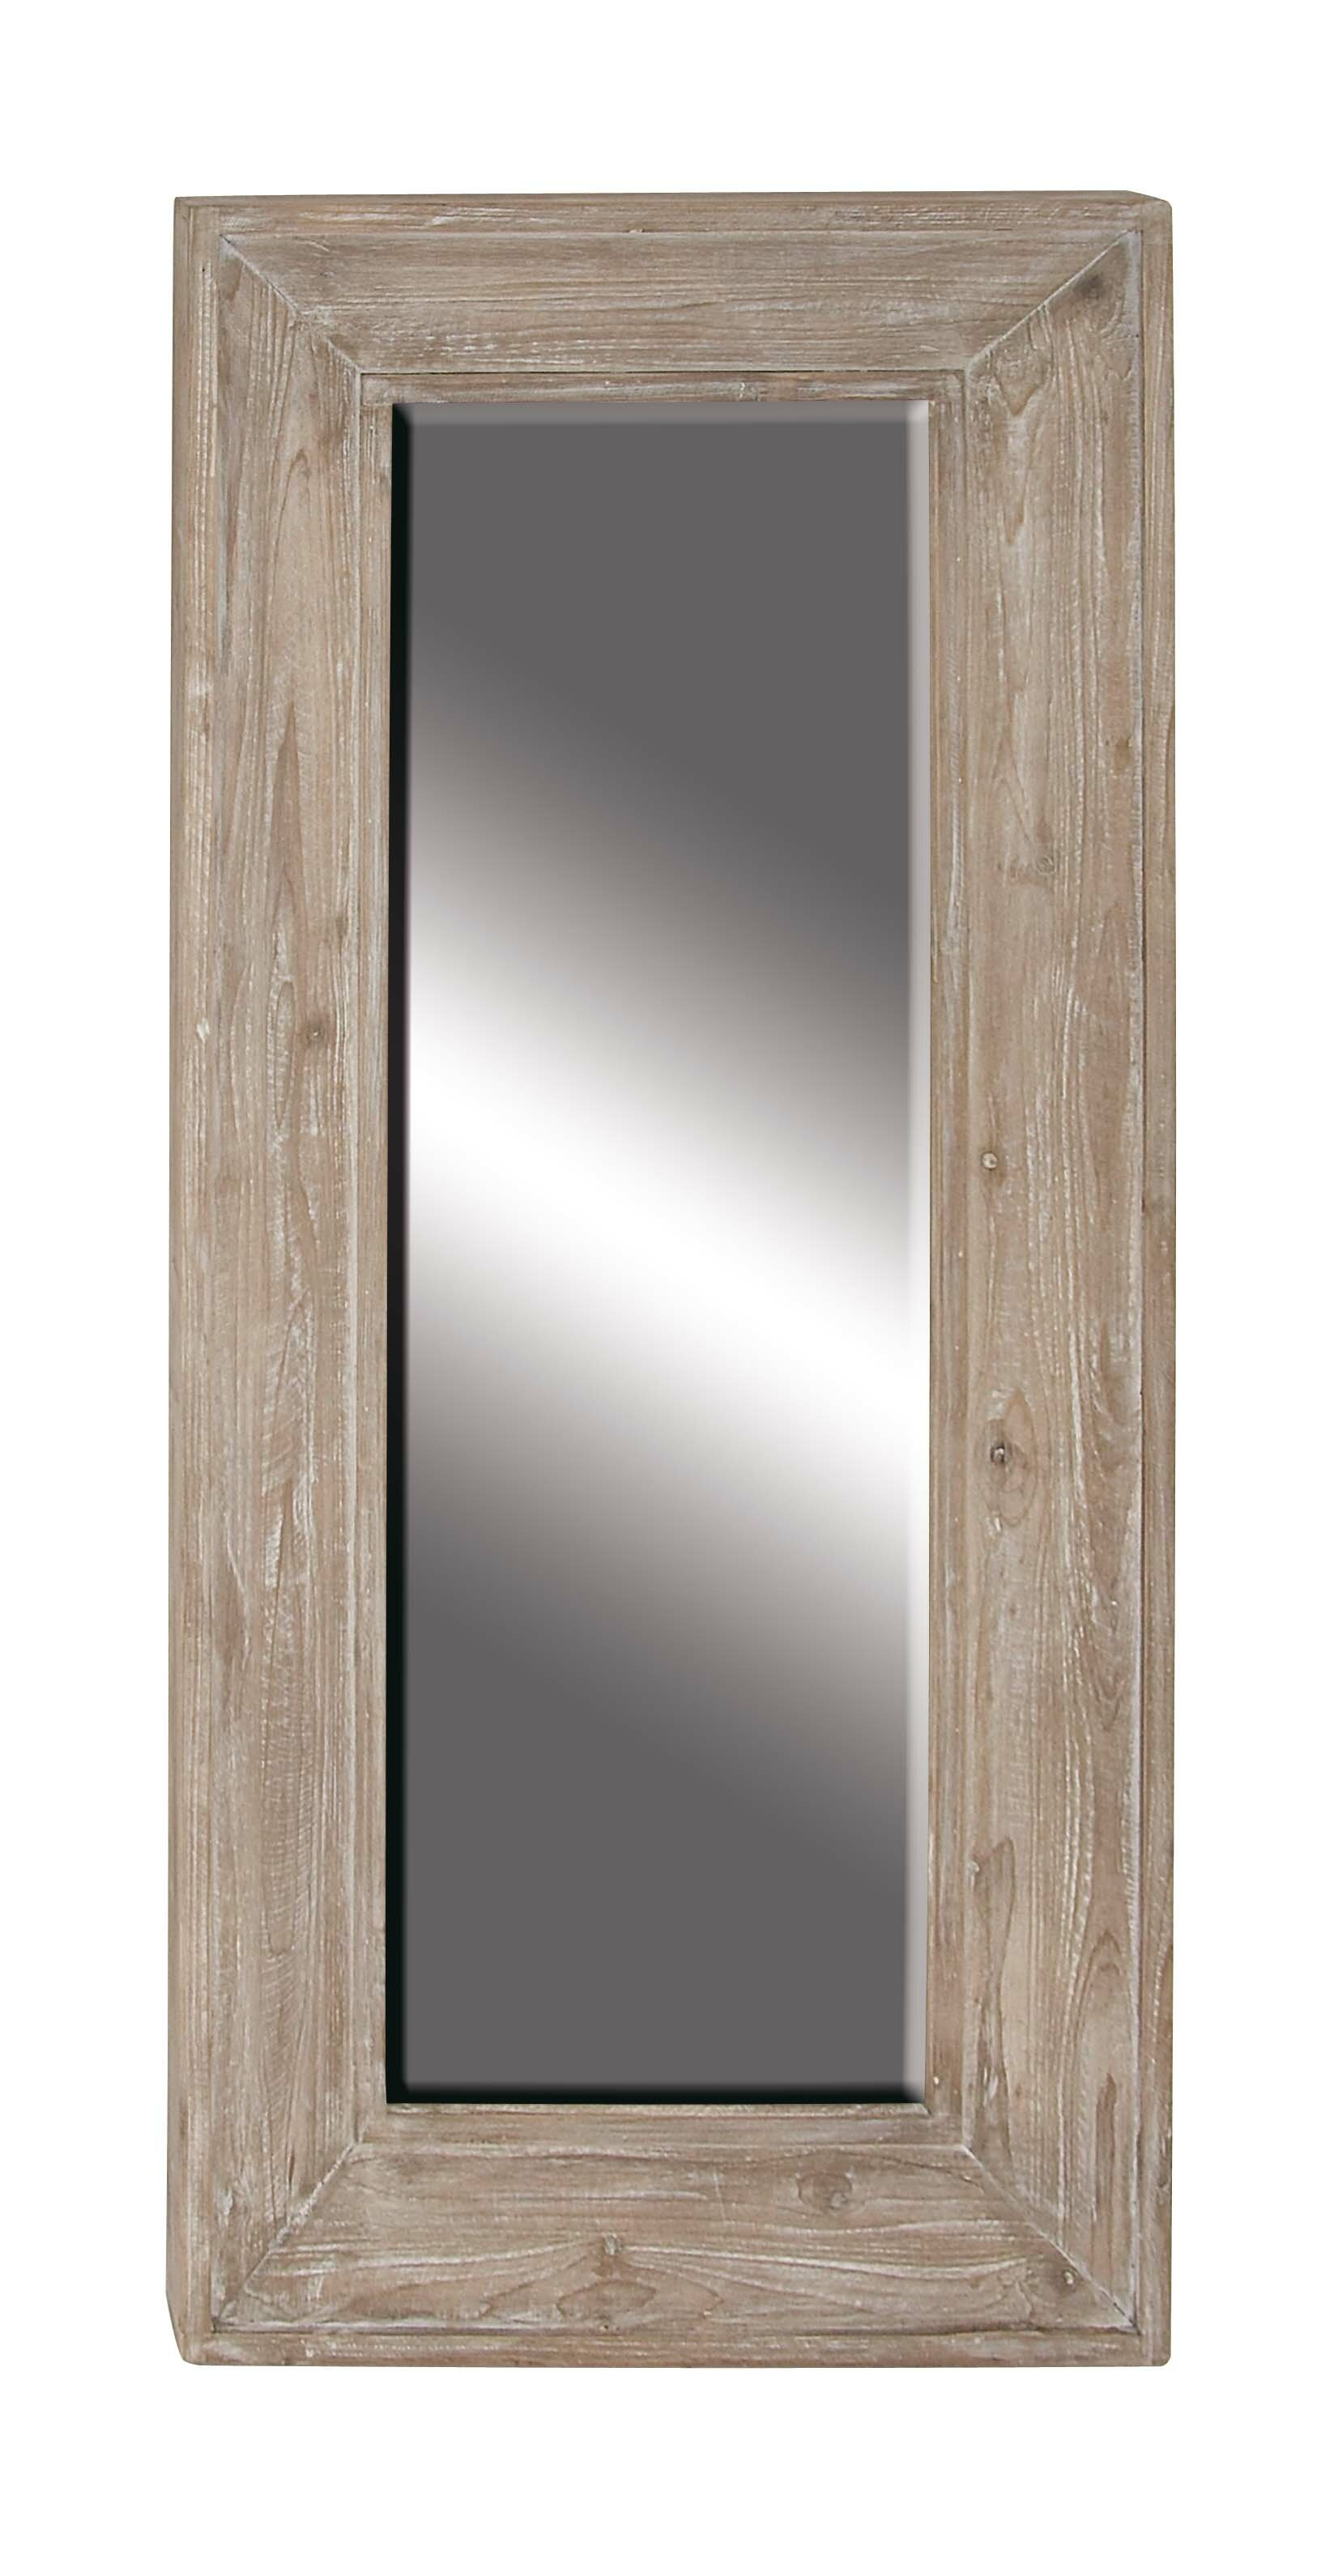 Darby Home Co Ashendon Rustic Full Length Mirror & Reviews | Wayfair